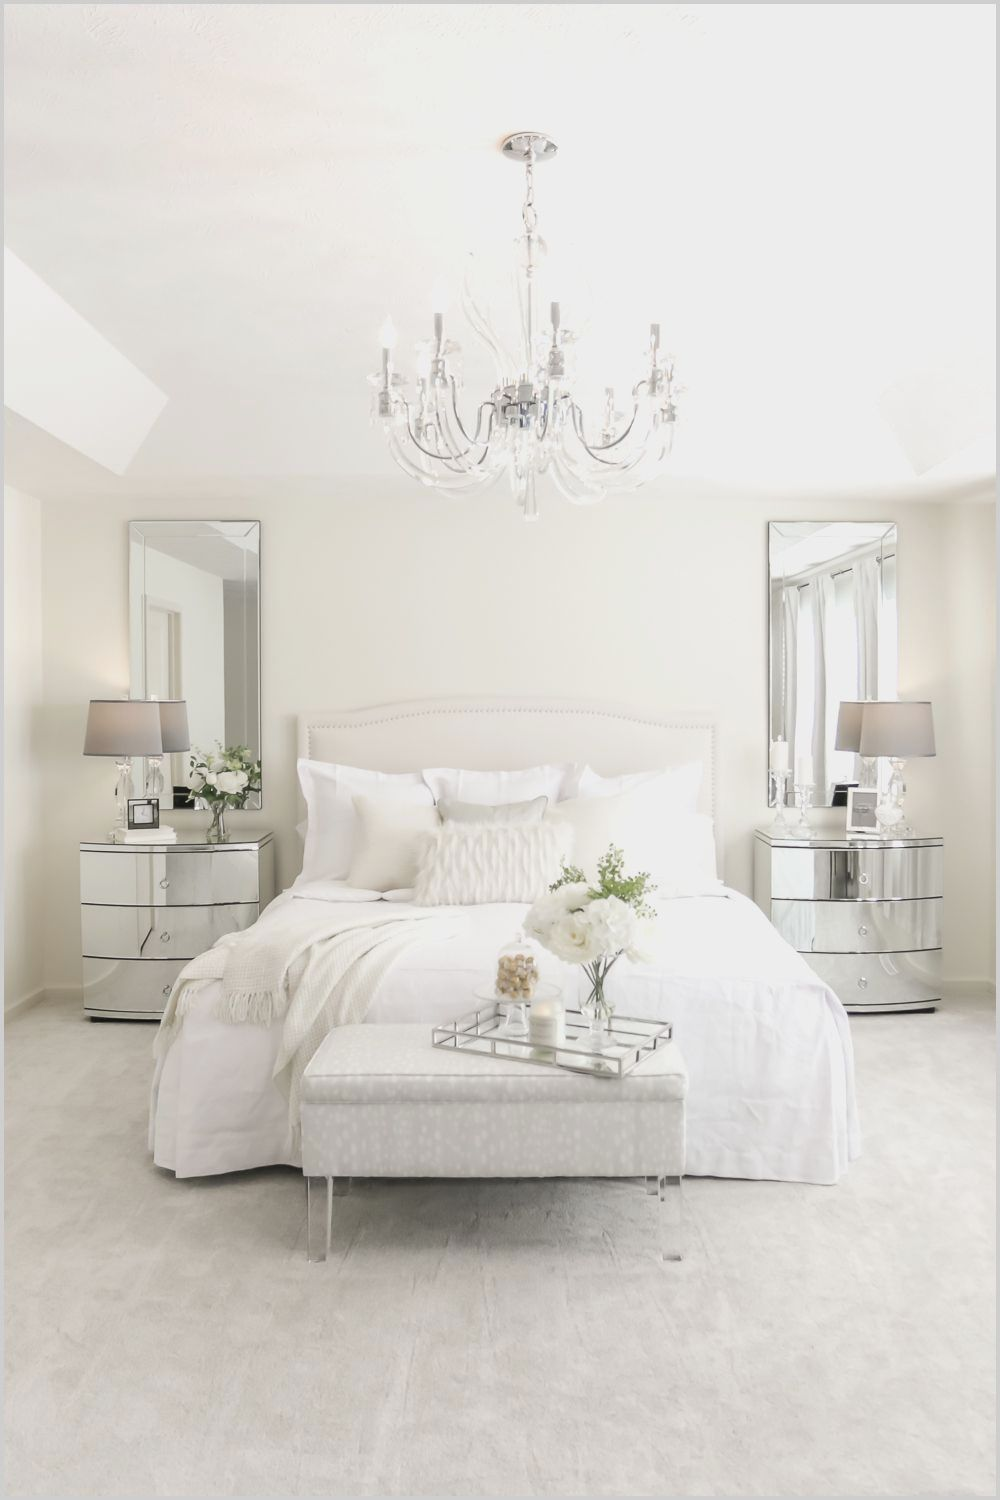 Ikea Small White Bedroom Interior In 2020 White Bedroom Set Small White Bedrooms All White Bedroom